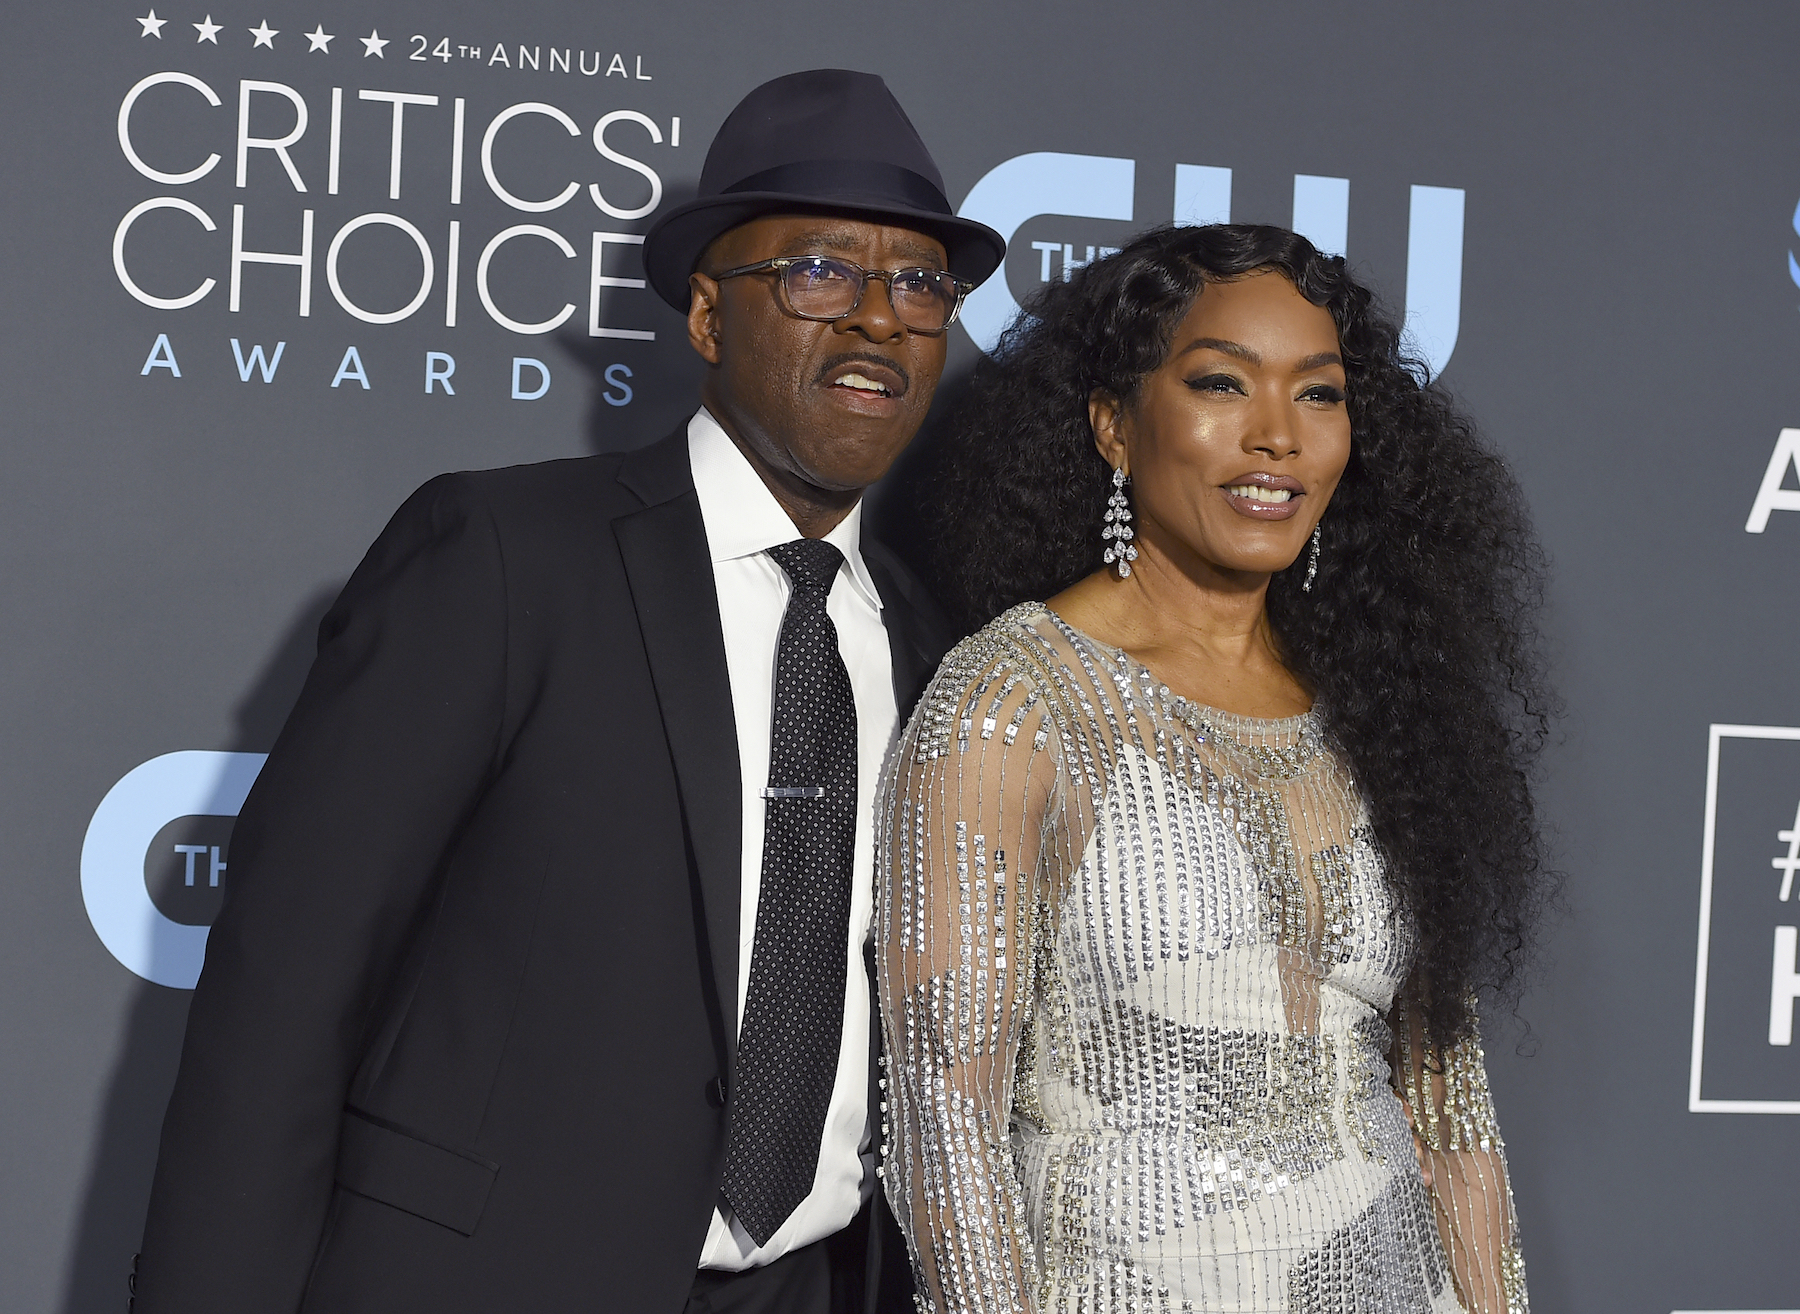 <div class='meta'><div class='origin-logo' data-origin='AP'></div><span class='caption-text' data-credit='Jordan Strauss/Invision/AP'>Courtney B. Vance, left, and Angela Bassett arrive at the 24th annual Critics' Choice Awards on Sunday, Jan. 13, 2019, at the Barker Hangar in Santa Monica, Calif.</span></div>